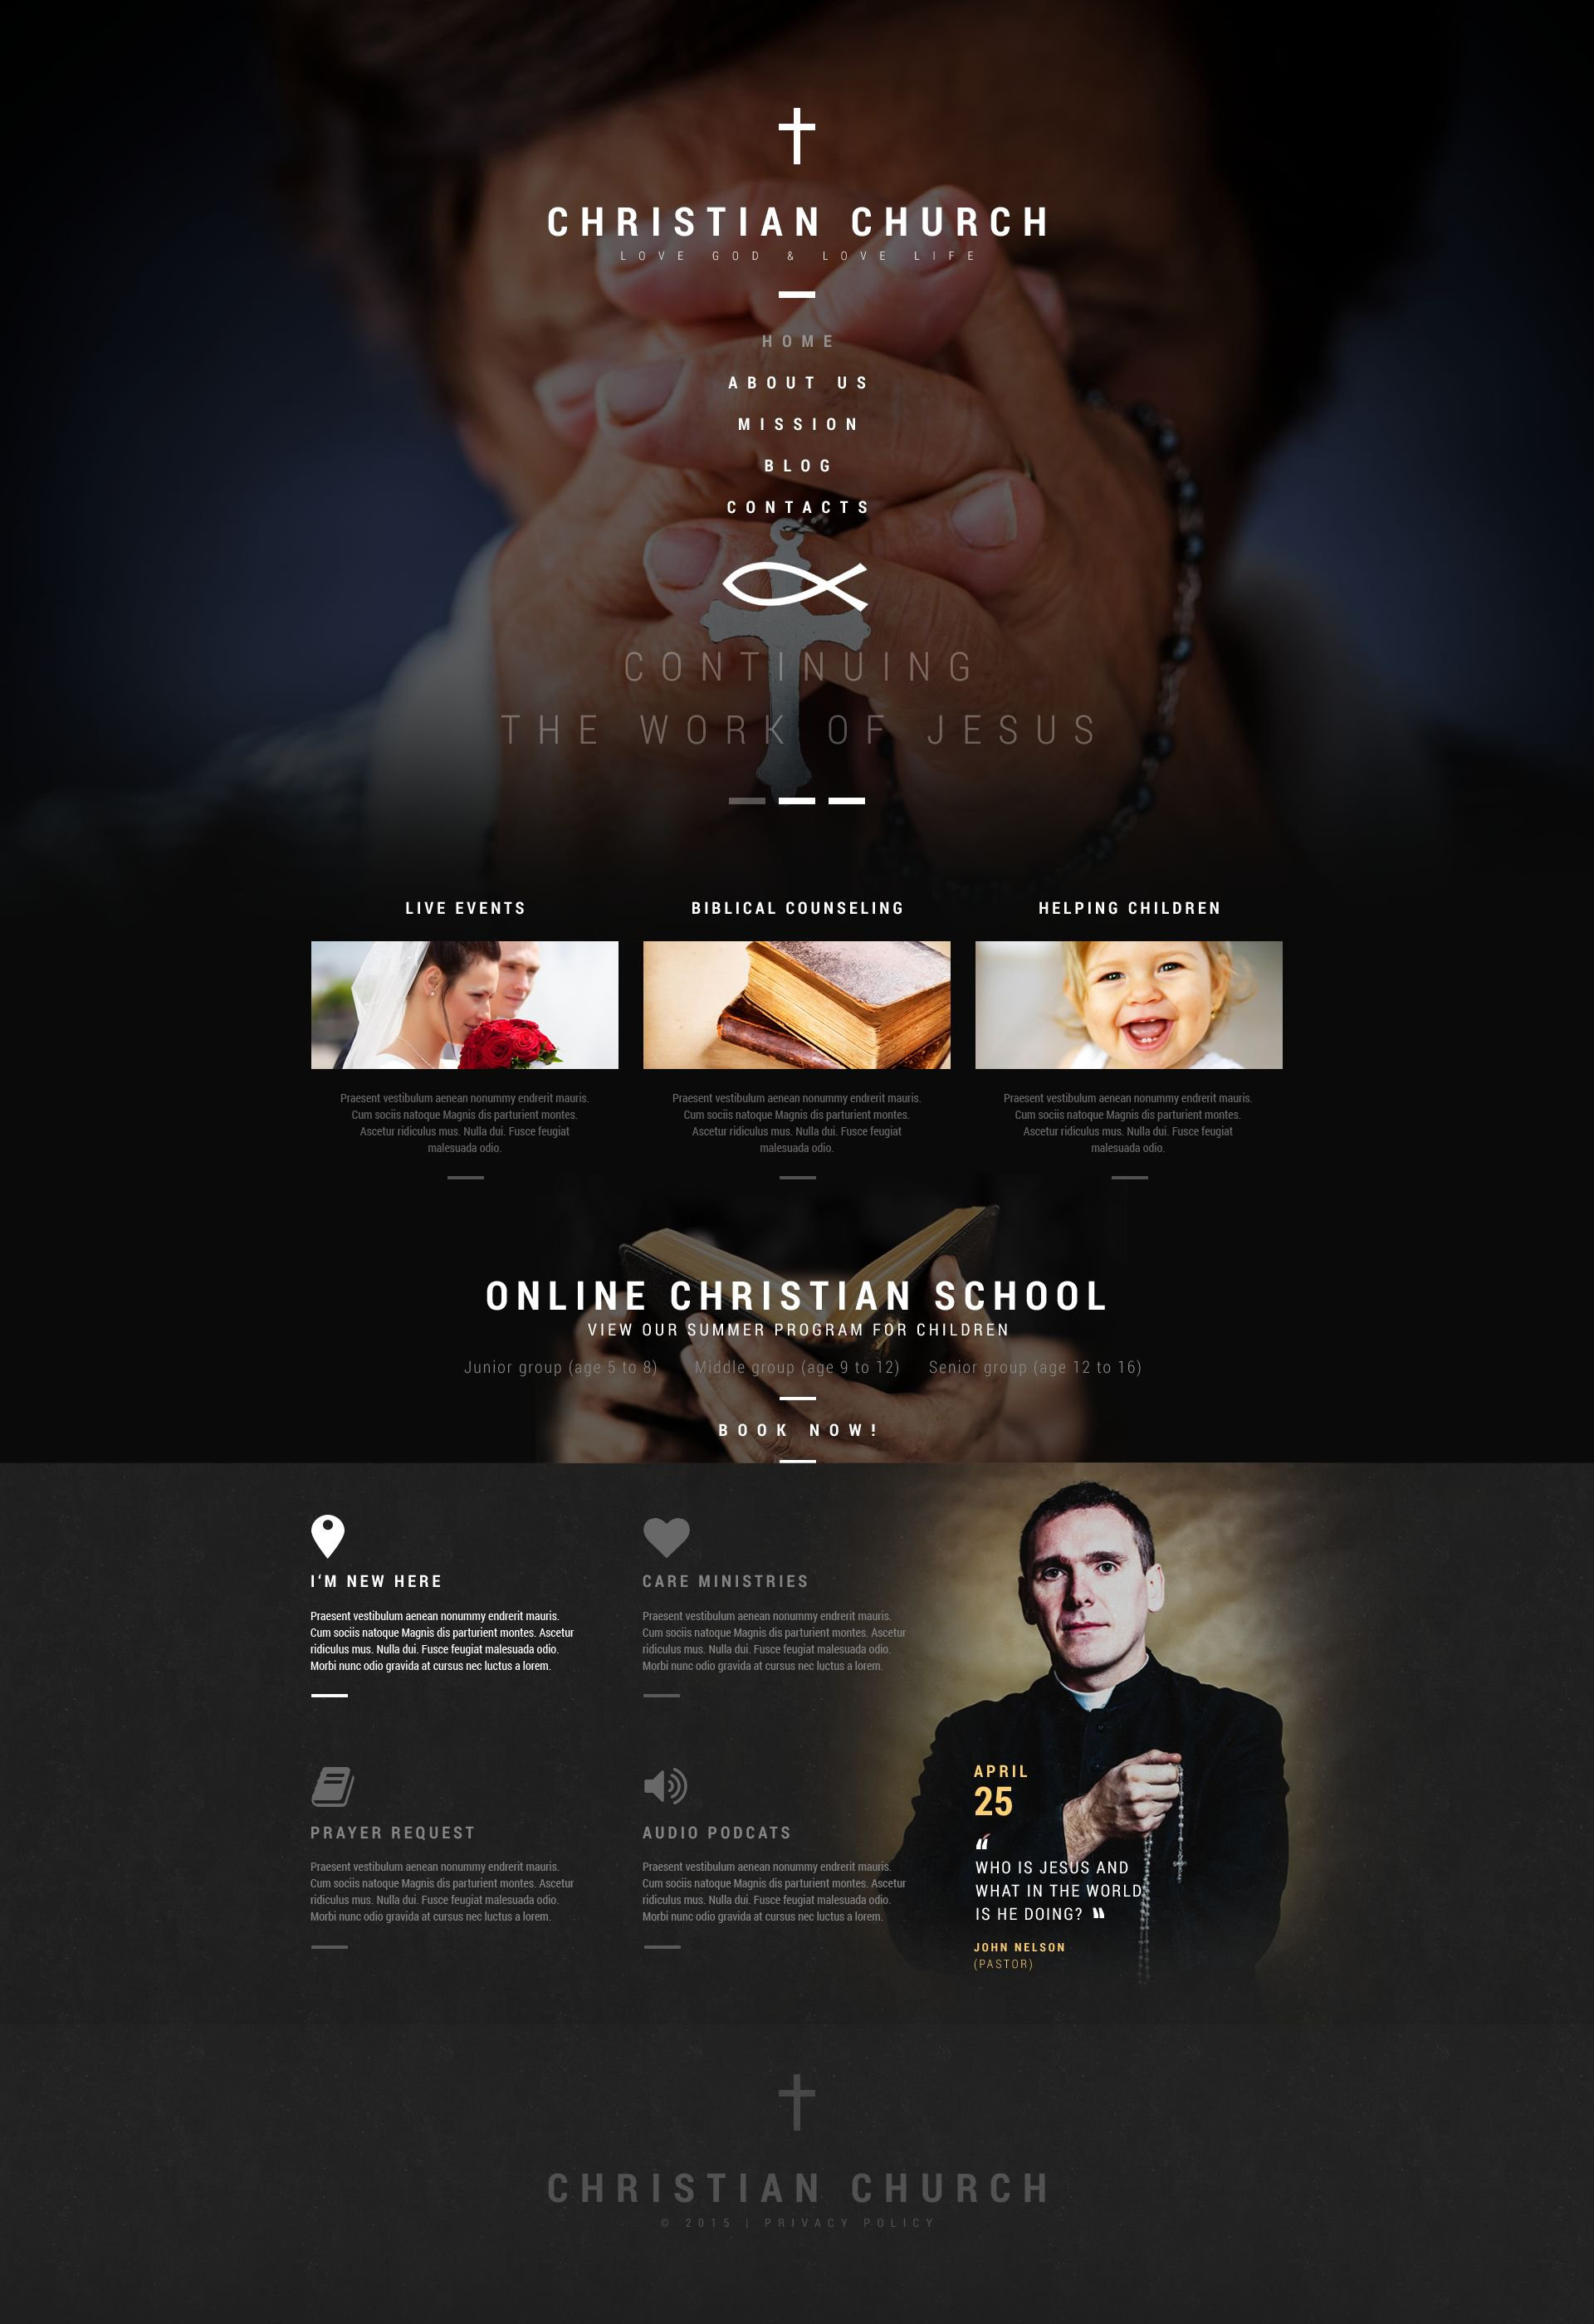 The Church Religious WordPress Design 53387, one of the best WordPress themes of its kind (wedding, most popular), also known as church religious WordPress template, religion WordPress template, God family care WordPress template, education WordPress template, Bible mission WordPress template, community WordPress template, sermon WordPress template, priest WordPress template, clergyman WordPress template, choir WordPress template, health WordPress template, Sunday school WordPress template, archive WordPress template, credence WordPress template, faith WordPress template, belief in God kindness WordPress template, confession WordPress template, homily WordPress template, sermon WordPress template, help WordPress template, support WordPress template, Christian catholic WordPress template, prayer and related with church religious, religion, God family care, education, Bible mission, community, sermon, priest, clergyman, choir, health, Sunday school, archive, credence, faith, belief in God kindness, confession, homily, sermon, help, support, Christian catholic, prayer, etc.